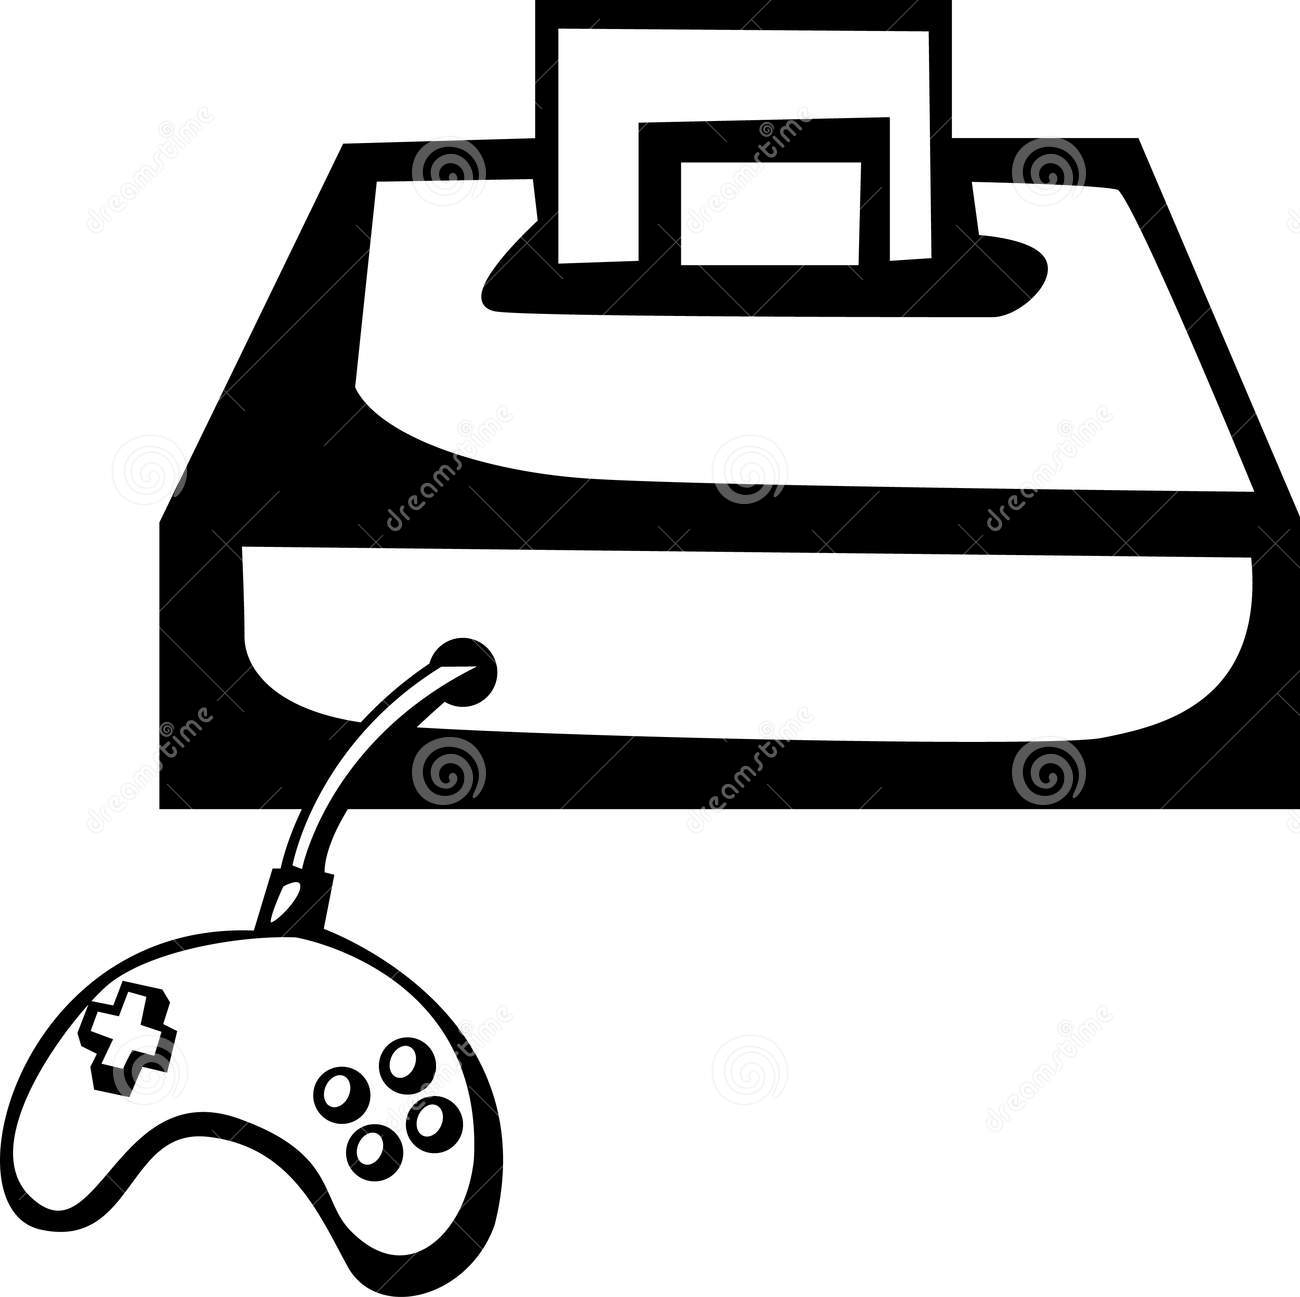 Play computer games clipart black and white picture free stock Video Games Clipart | Free download best Video Games Clipart ... picture free stock